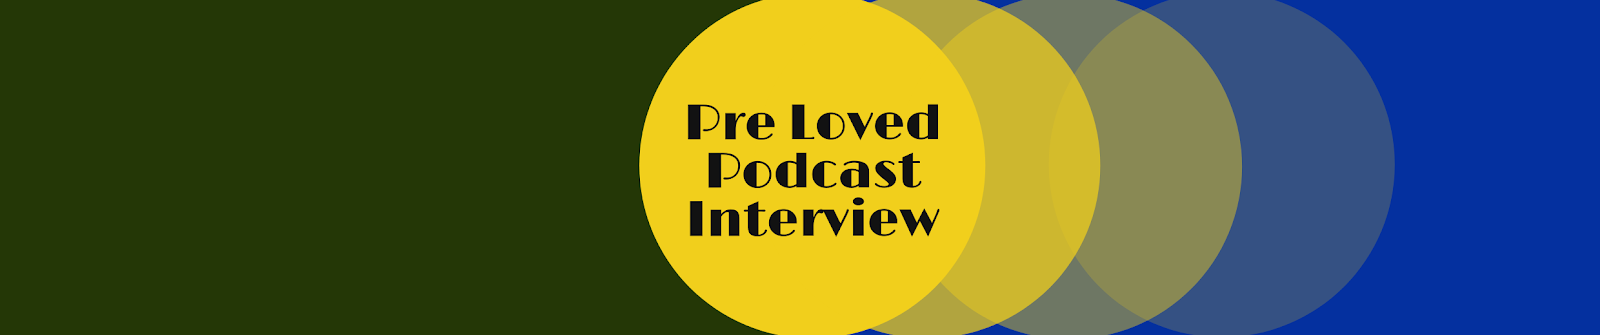 pre loved pod interview